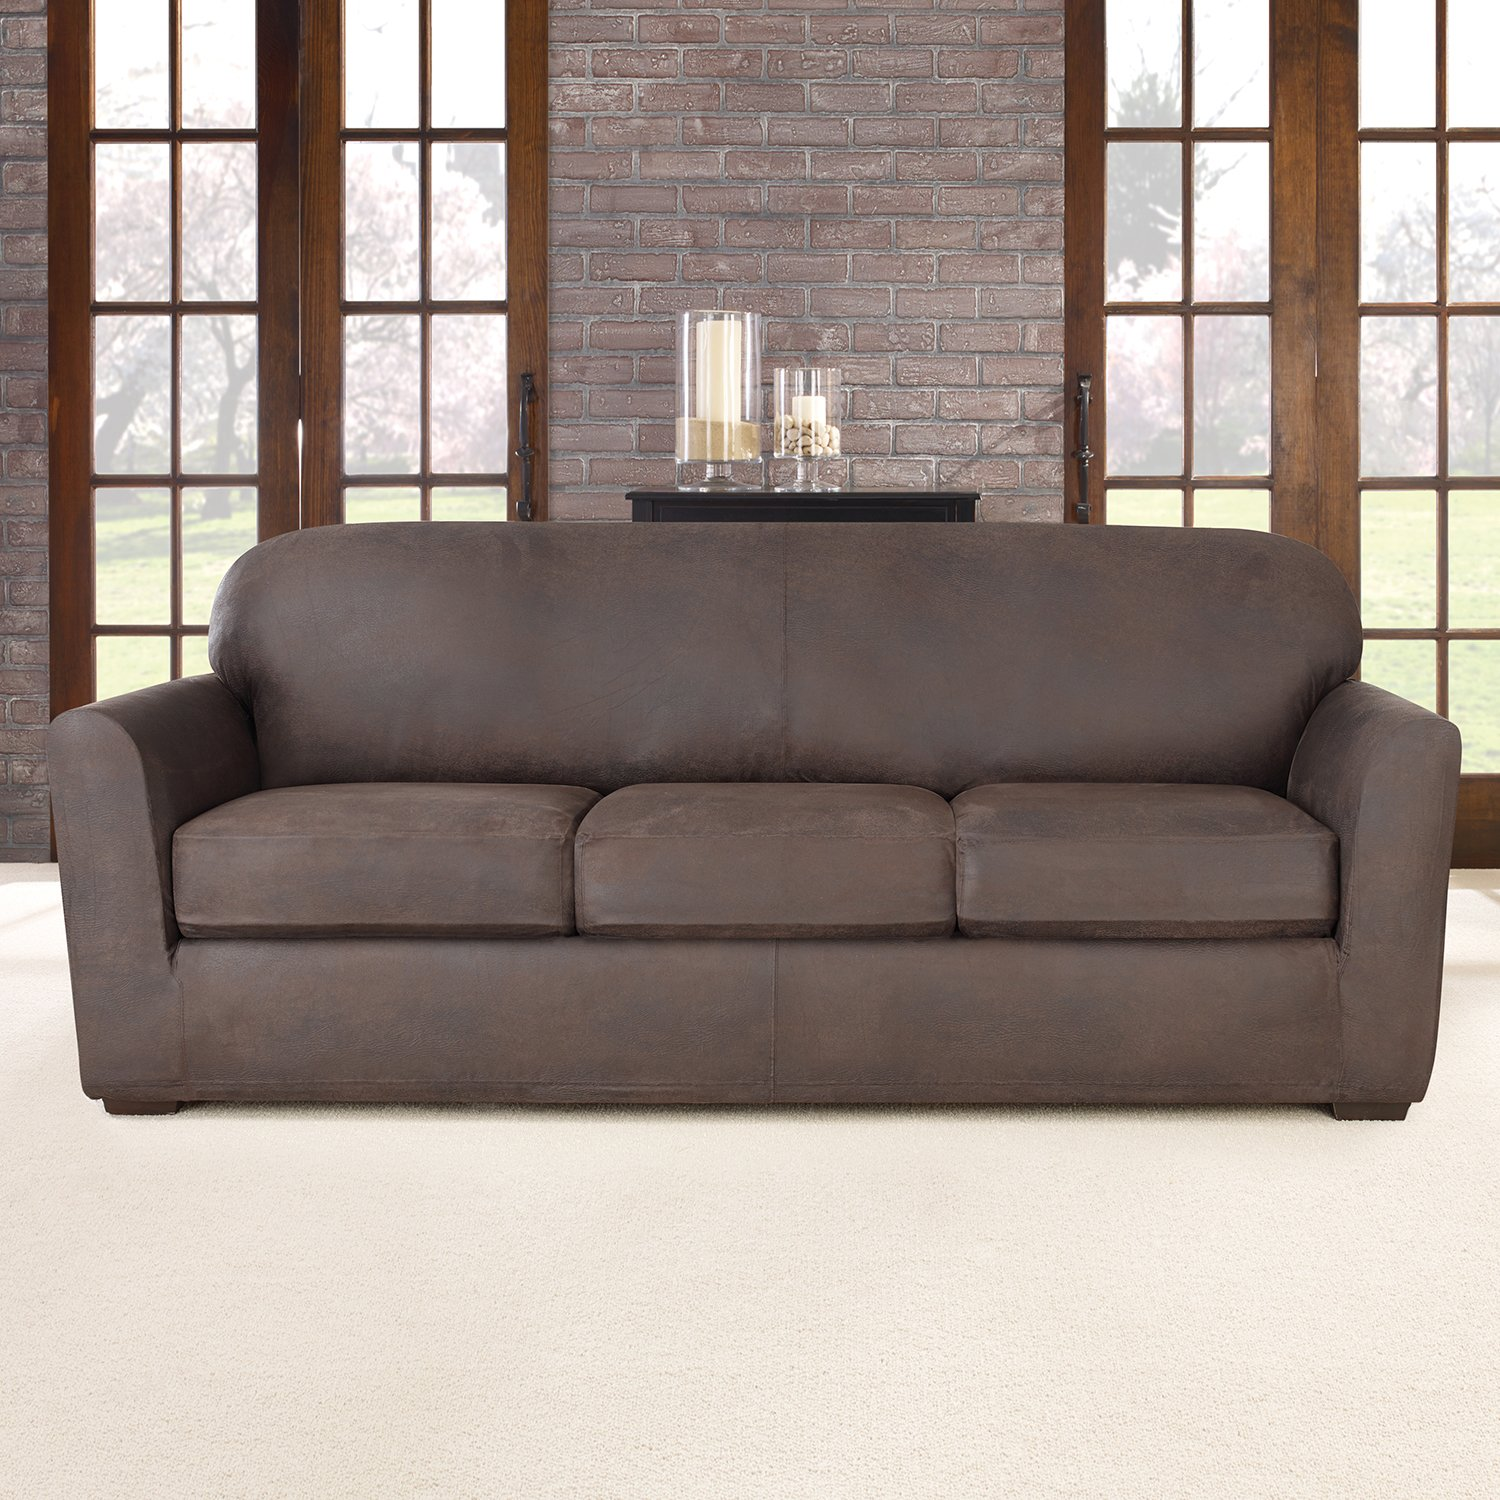 Beautiful Amazon.com: Sure Fit Ultimate Stretch Leather   Sofa Slipcover   Weathered  Saddle (SF44050): Home U0026 Kitchen